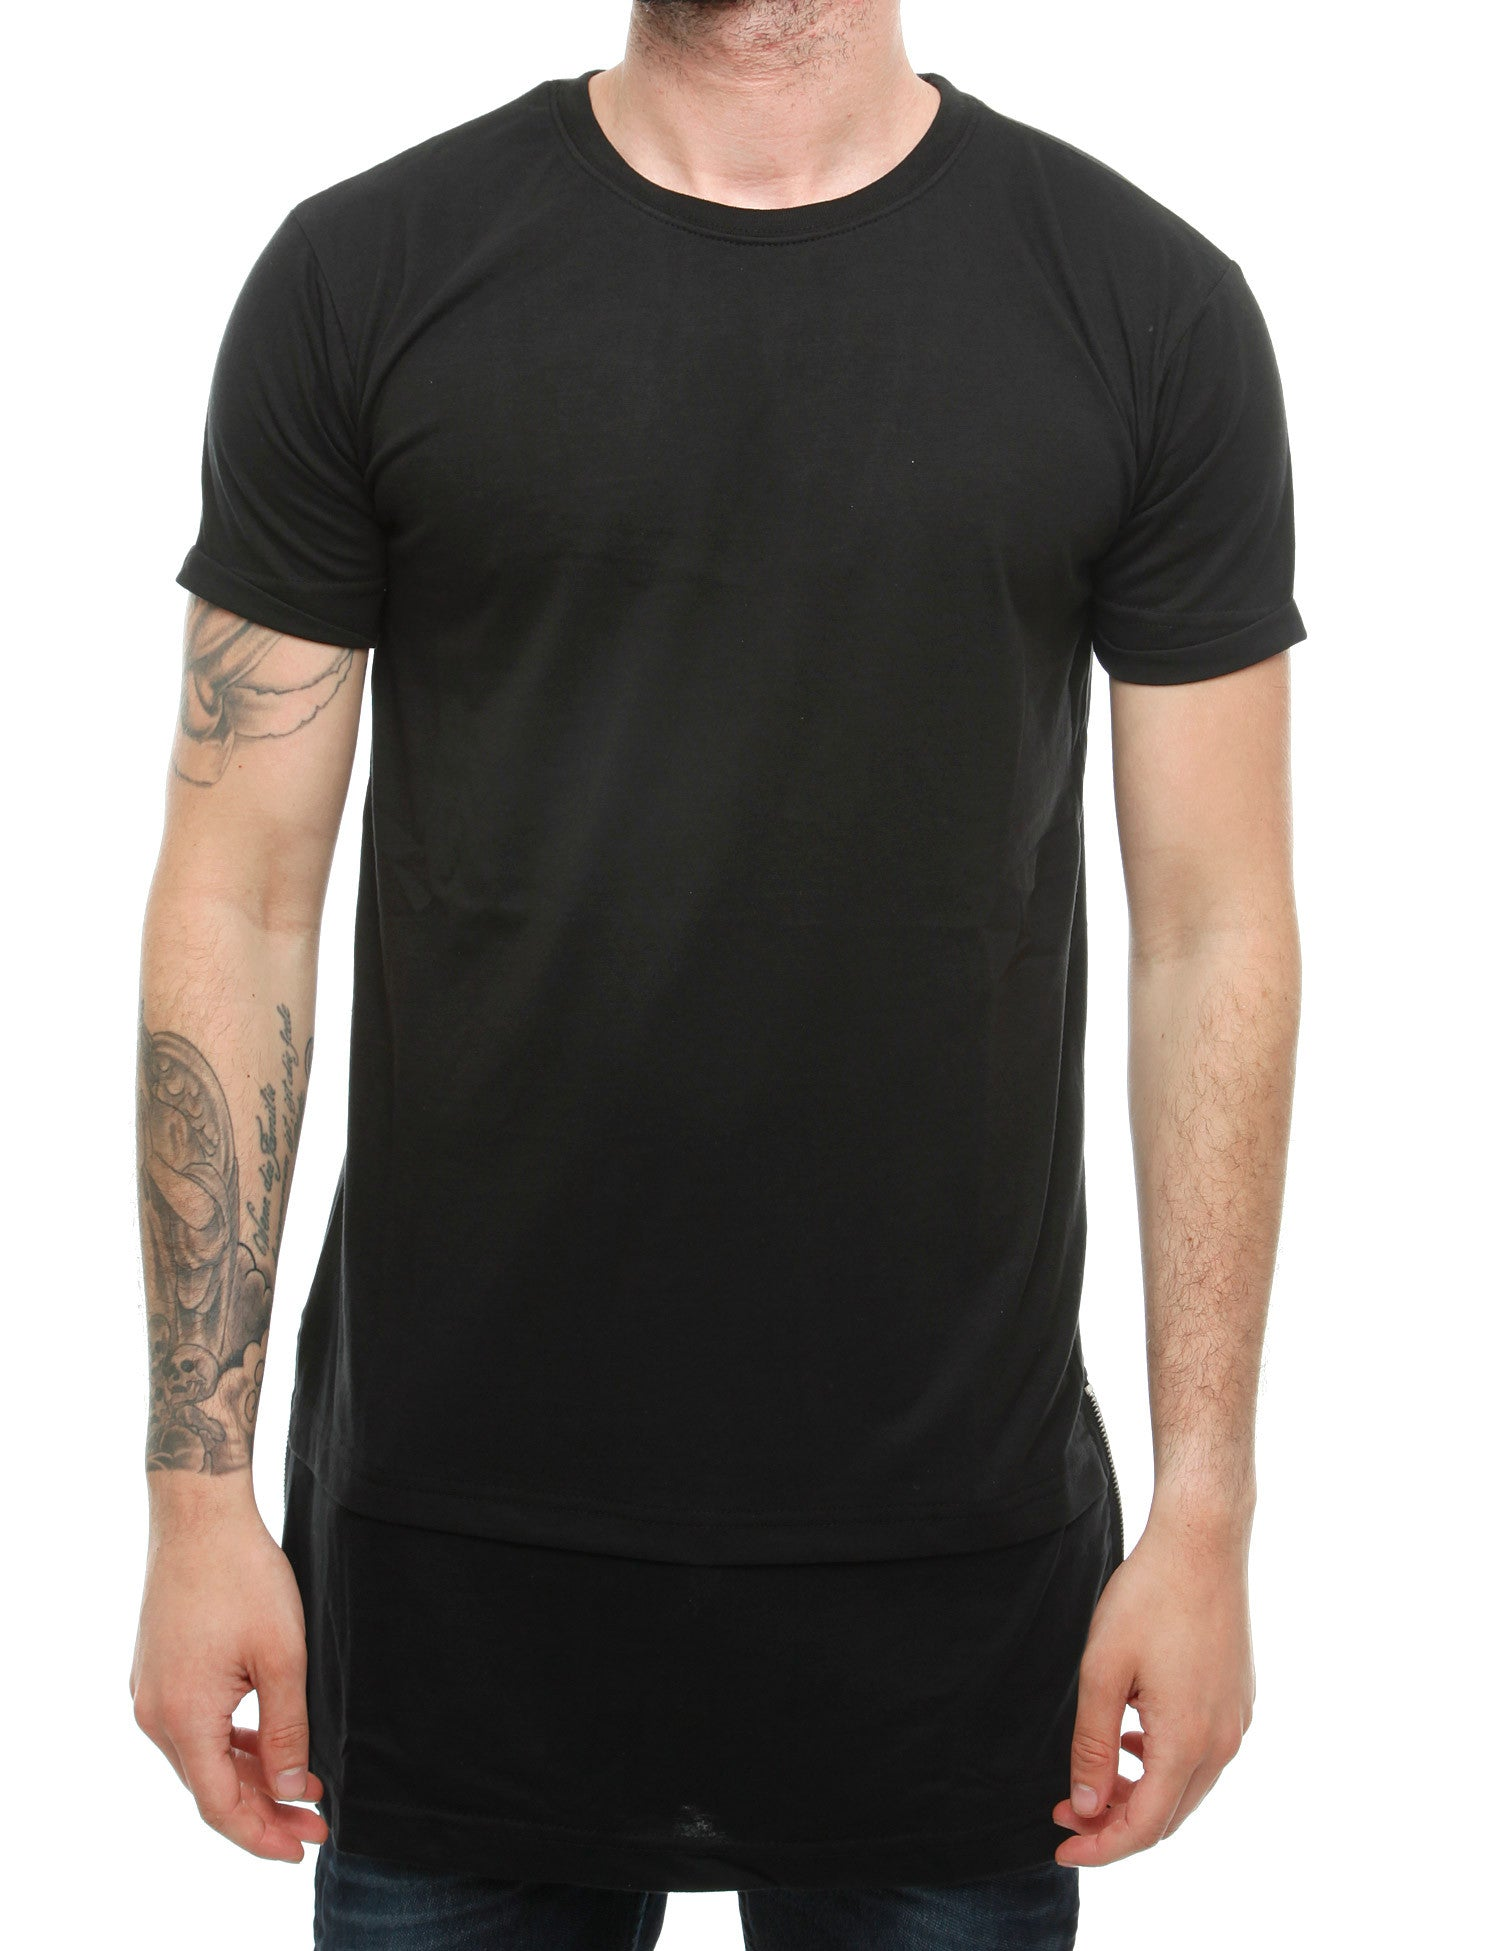 Townz Long Contract  Tee with Zipper TNZ16-013 Black